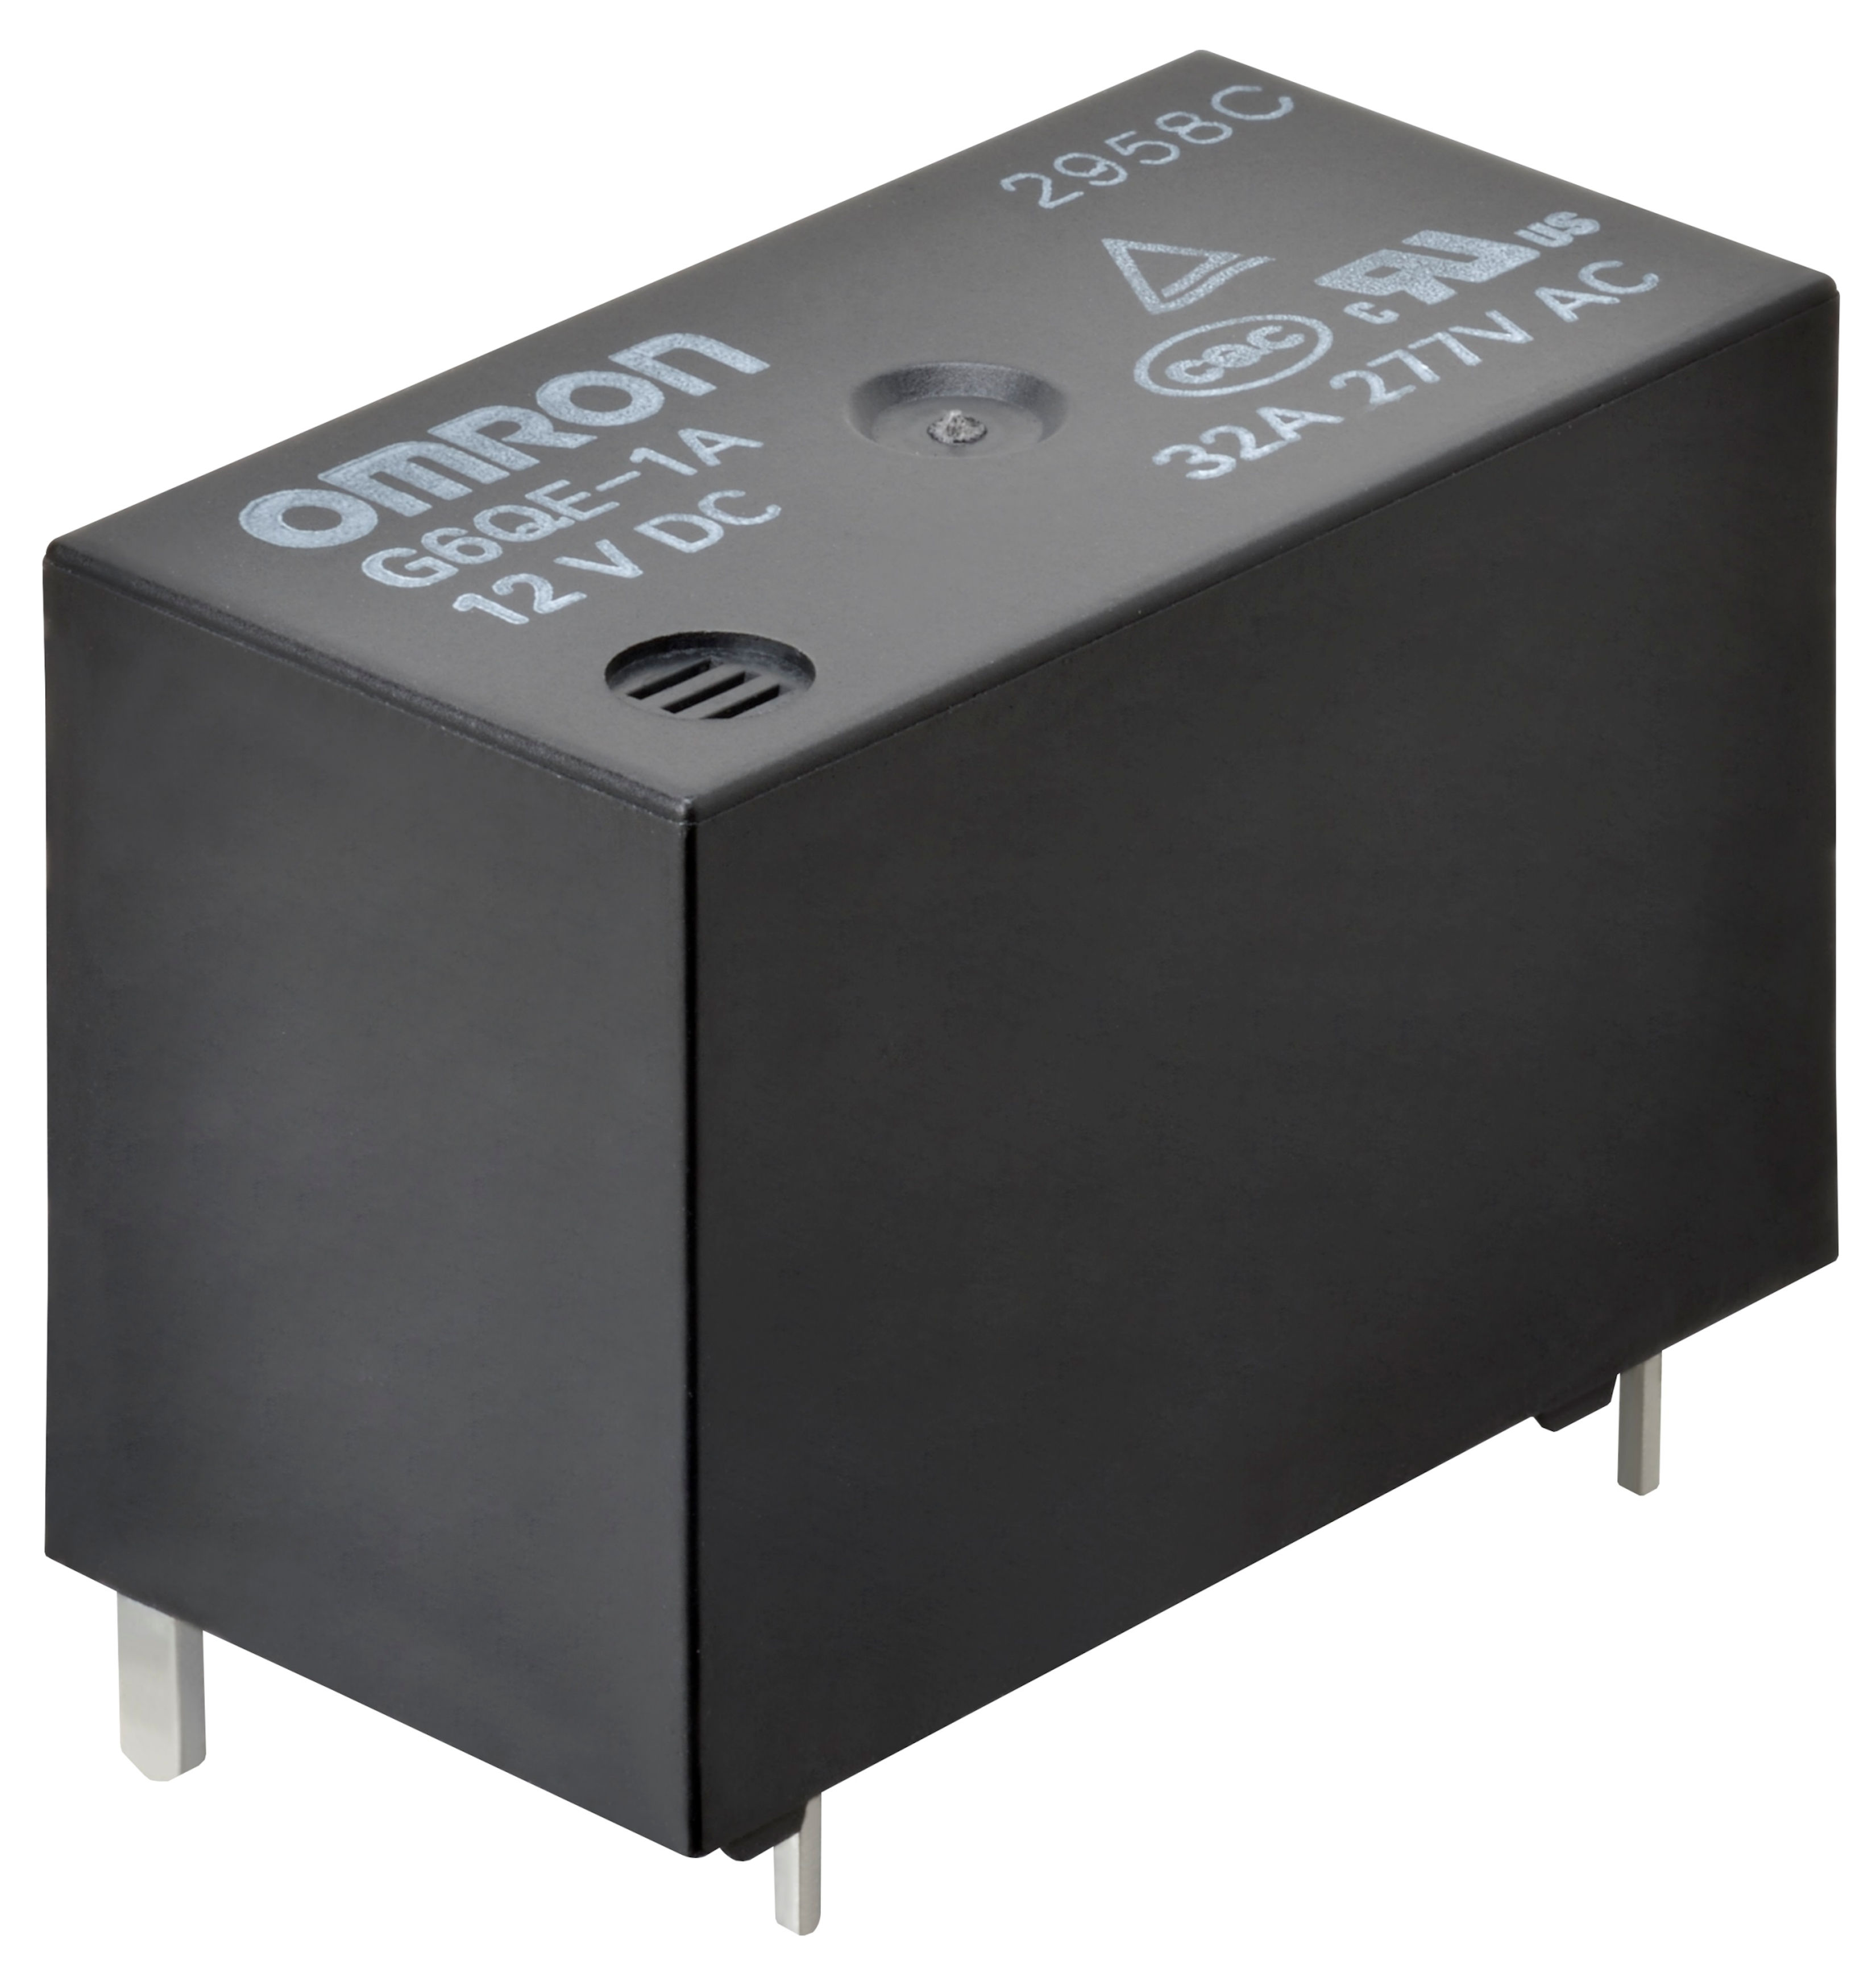 Omron Release New Small Size Pcb Power Relay Boasting High Switching Electrical For Dummies The G6qe From Has A Capacity Of 32a